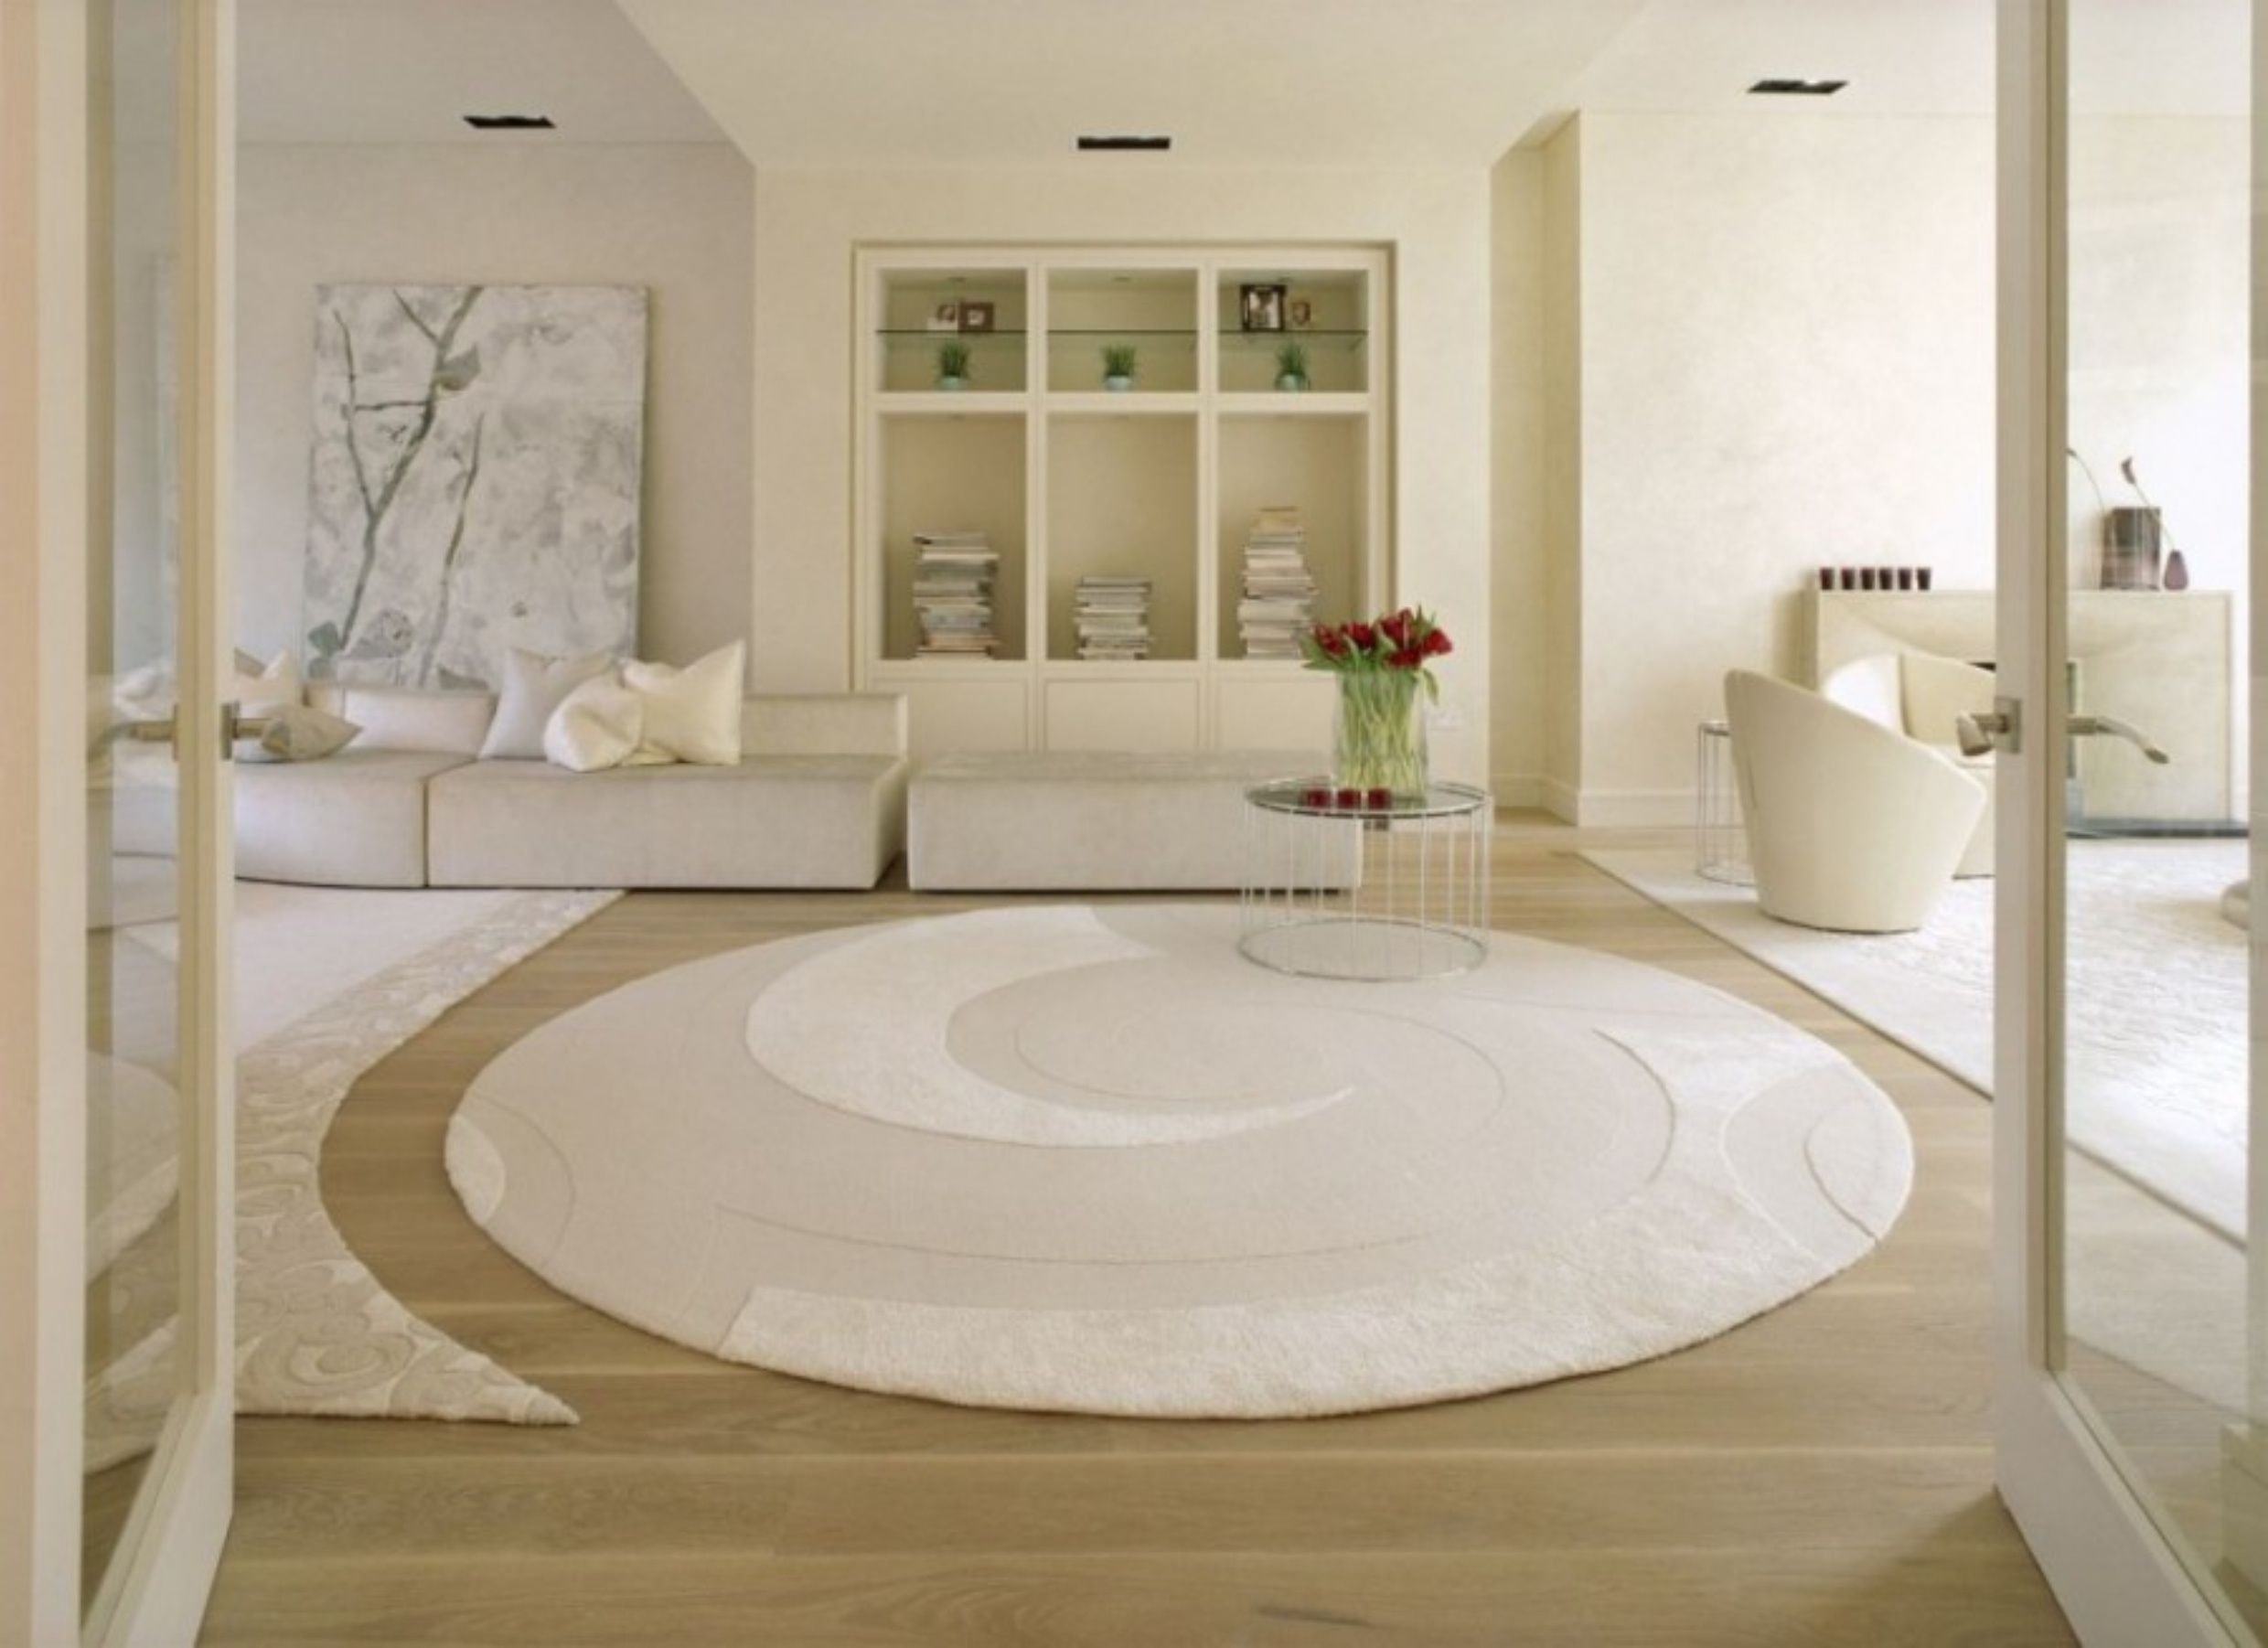 White Round Extra Large Bathroom Rug Large Bathroom Rugs - Contemporary bathroom rugs for bathroom decorating ideas